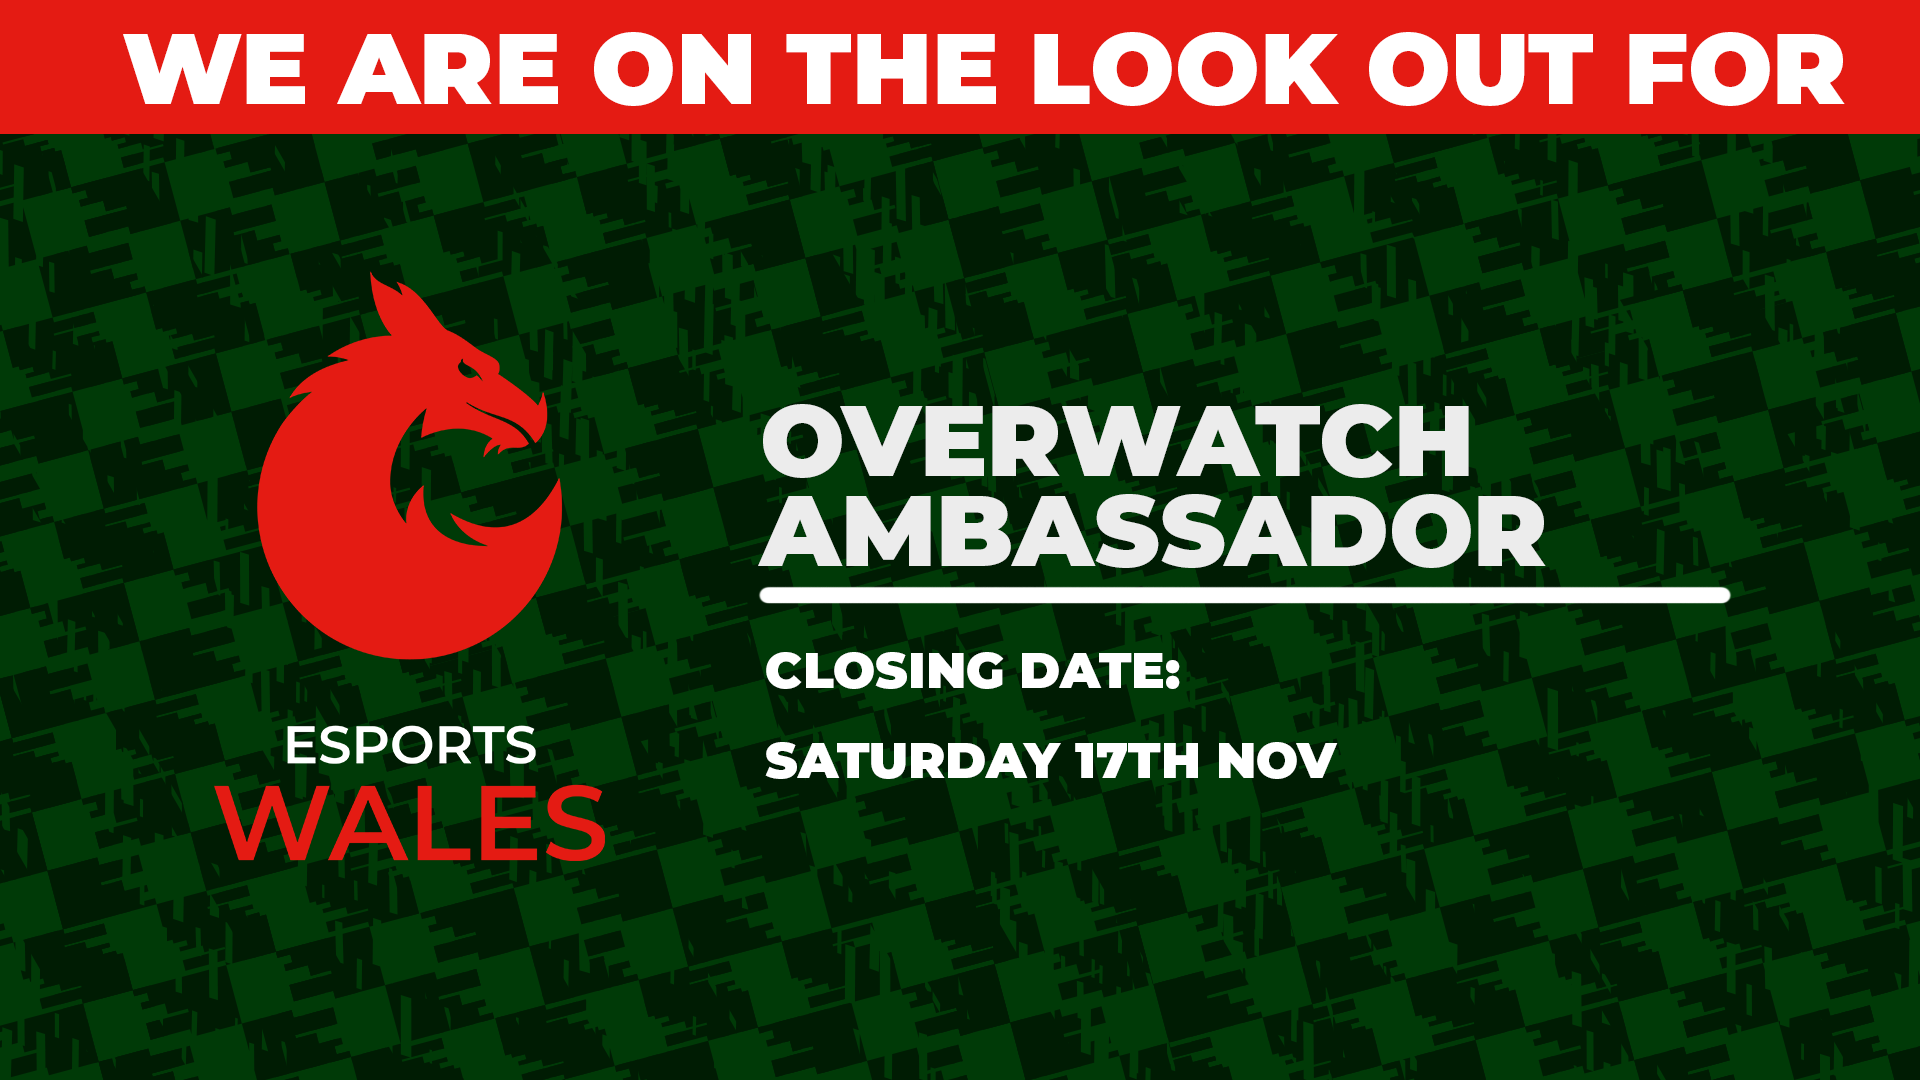 We are looking for a Overwatch Ambassador!